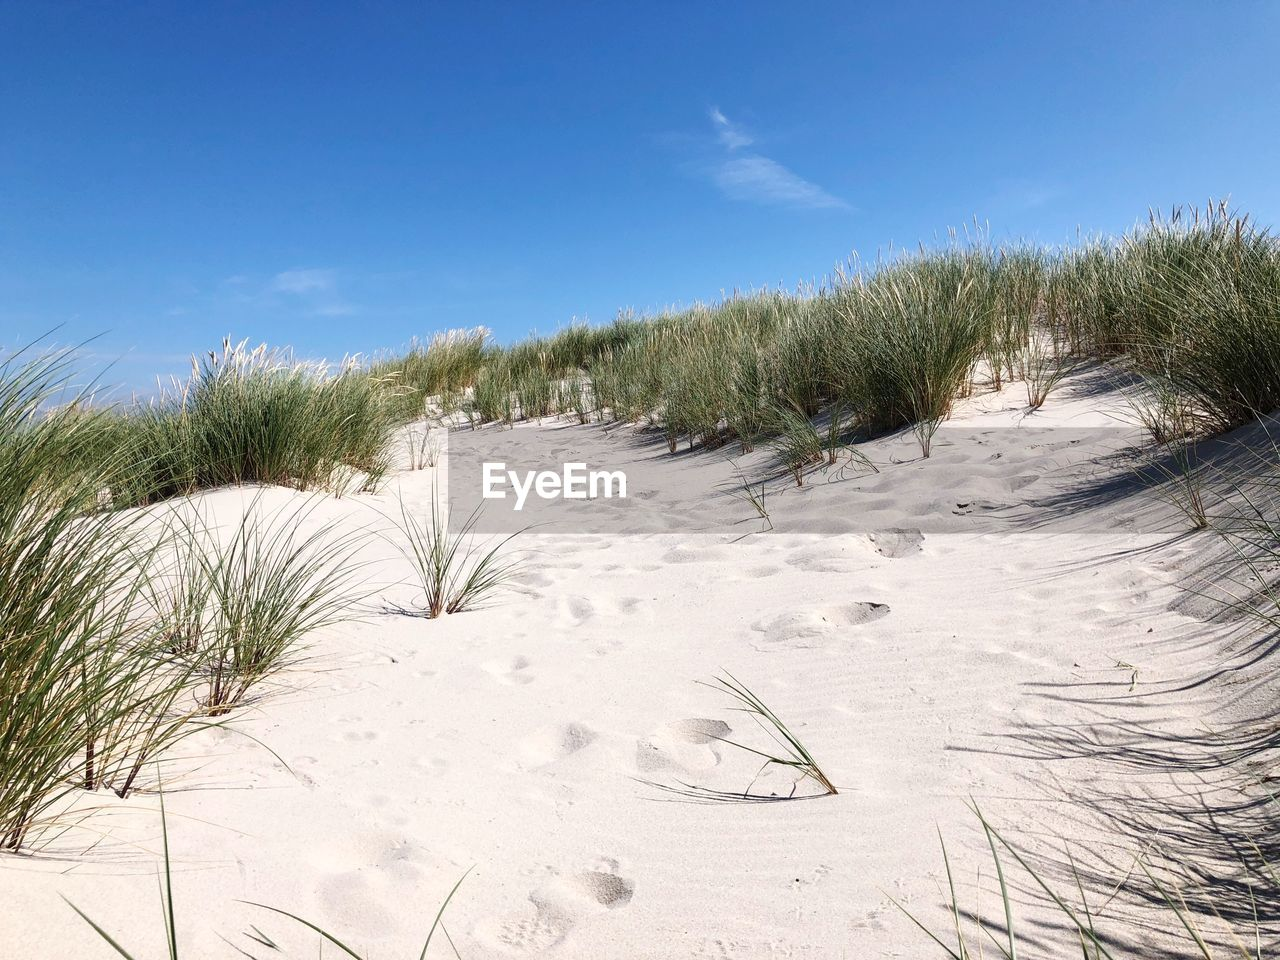 sky, sand, plant, land, beauty in nature, tranquility, nature, grass, growth, beach, tranquil scene, no people, winter, scenics - nature, snow, day, cold temperature, non-urban scene, landscape, cloud - sky, marram grass, outdoors